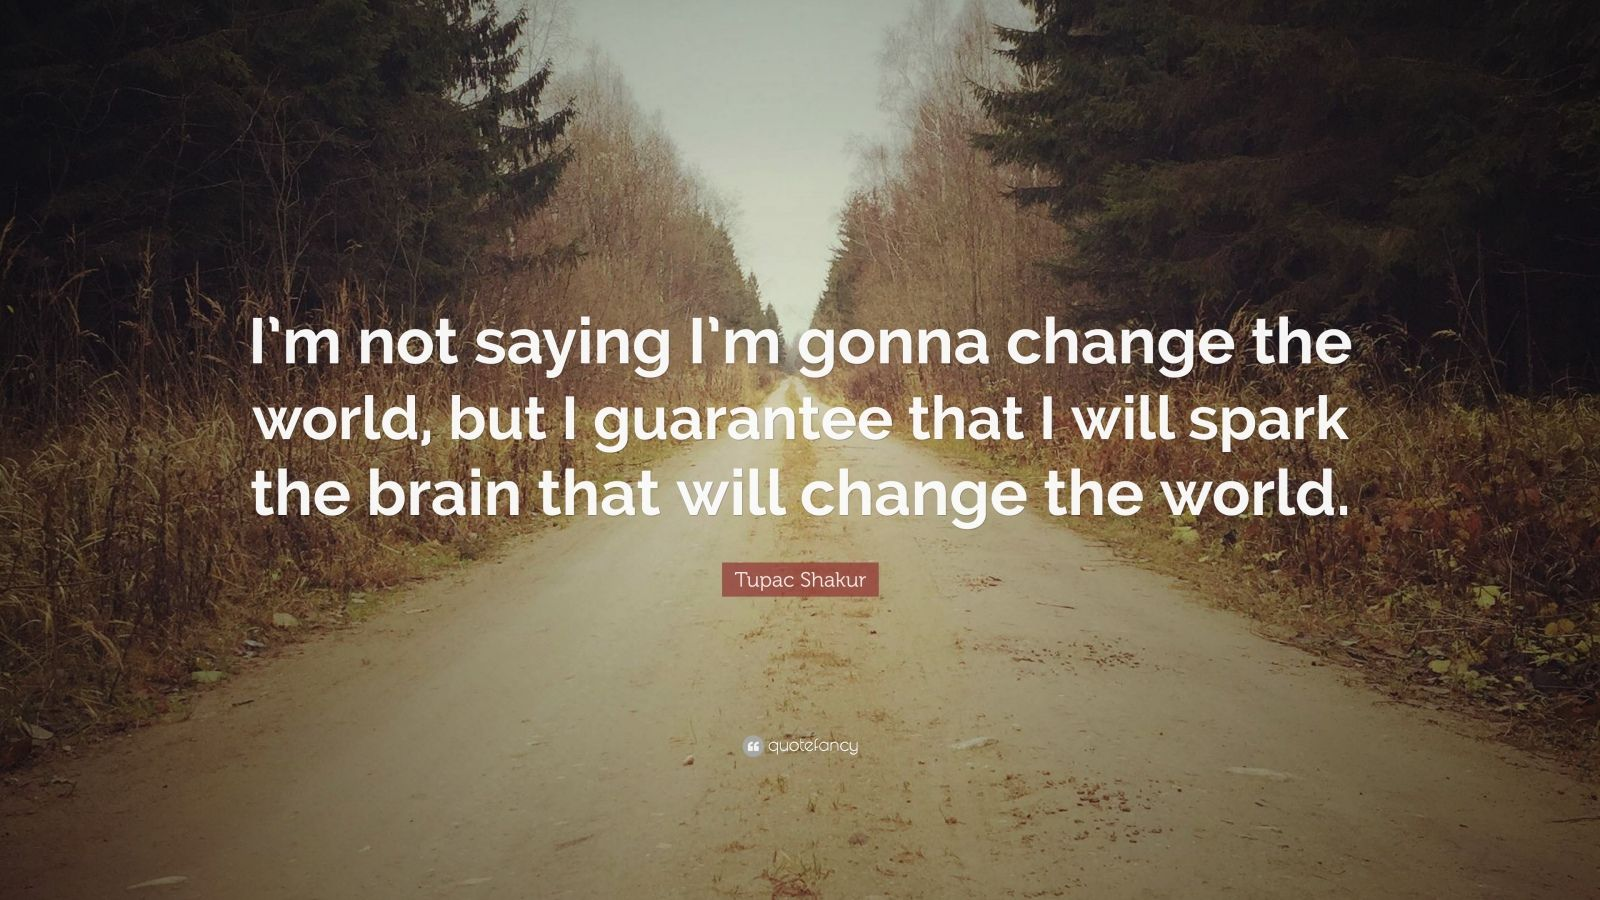 """Tupac Shakur Quote: """"I'm not saying I'm gonna change the world, but I guarantee that I will spark the brain that will change the world."""""""